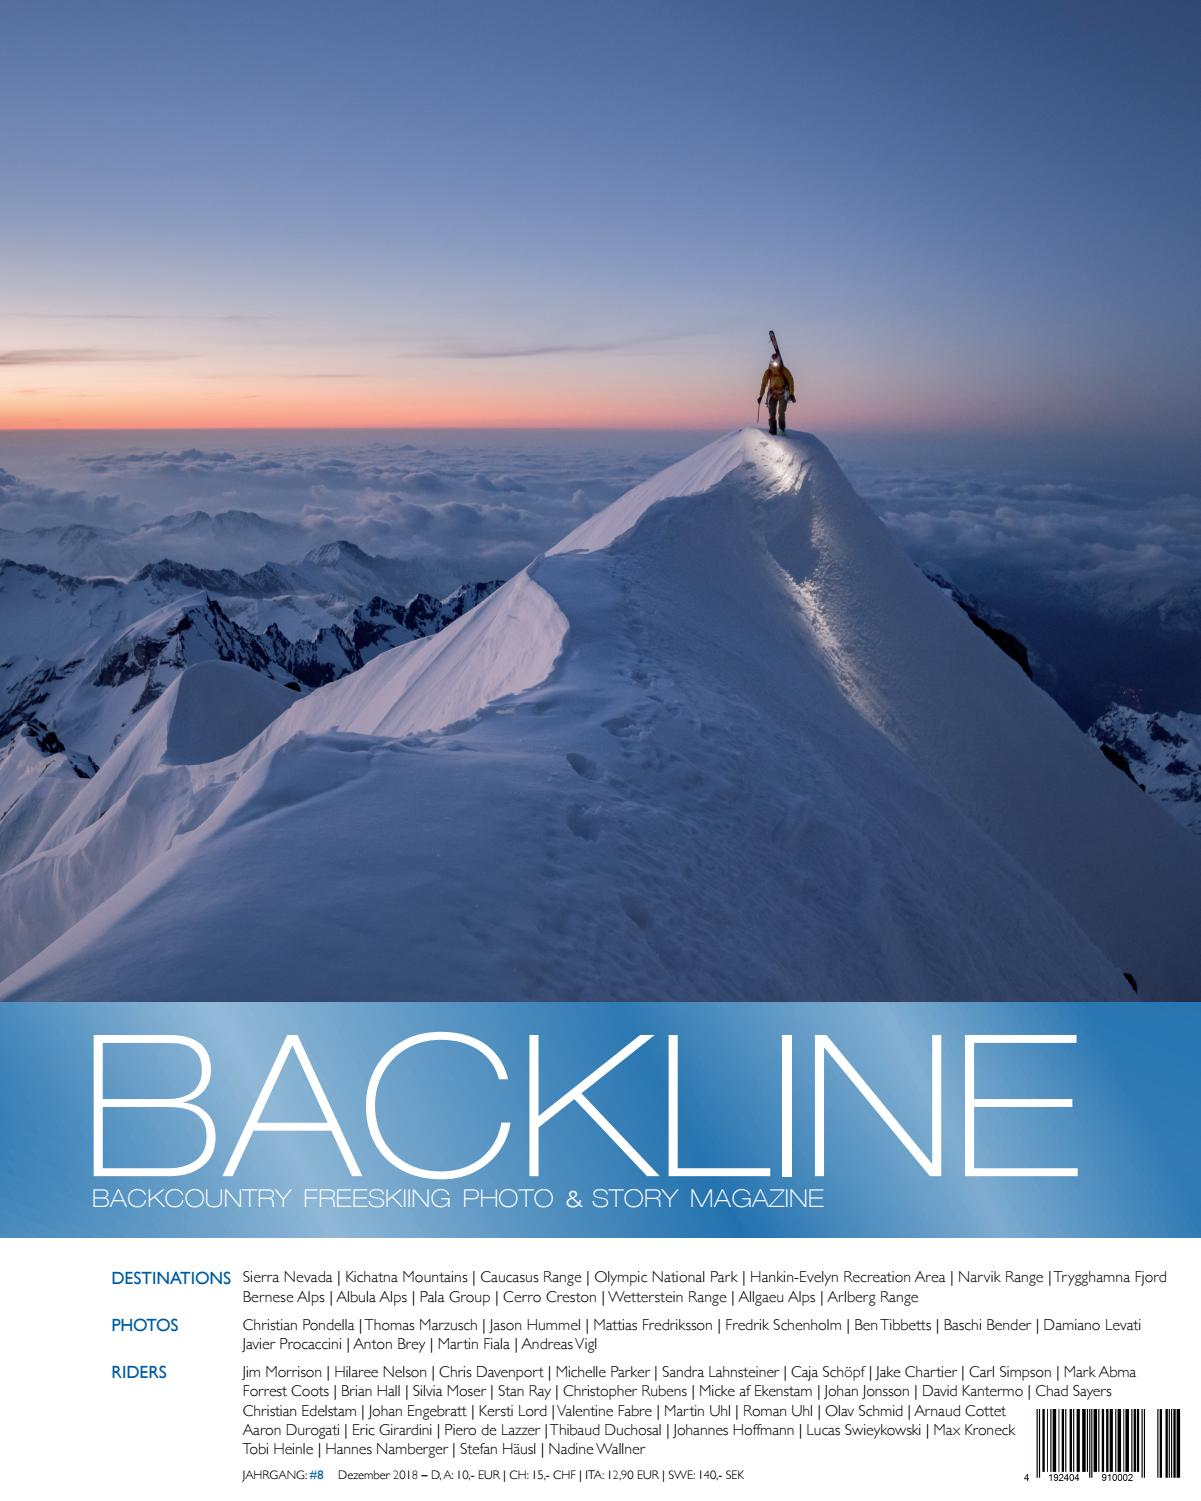 BACKLINE 2018 Backcountry Freeskiing Photo & Story